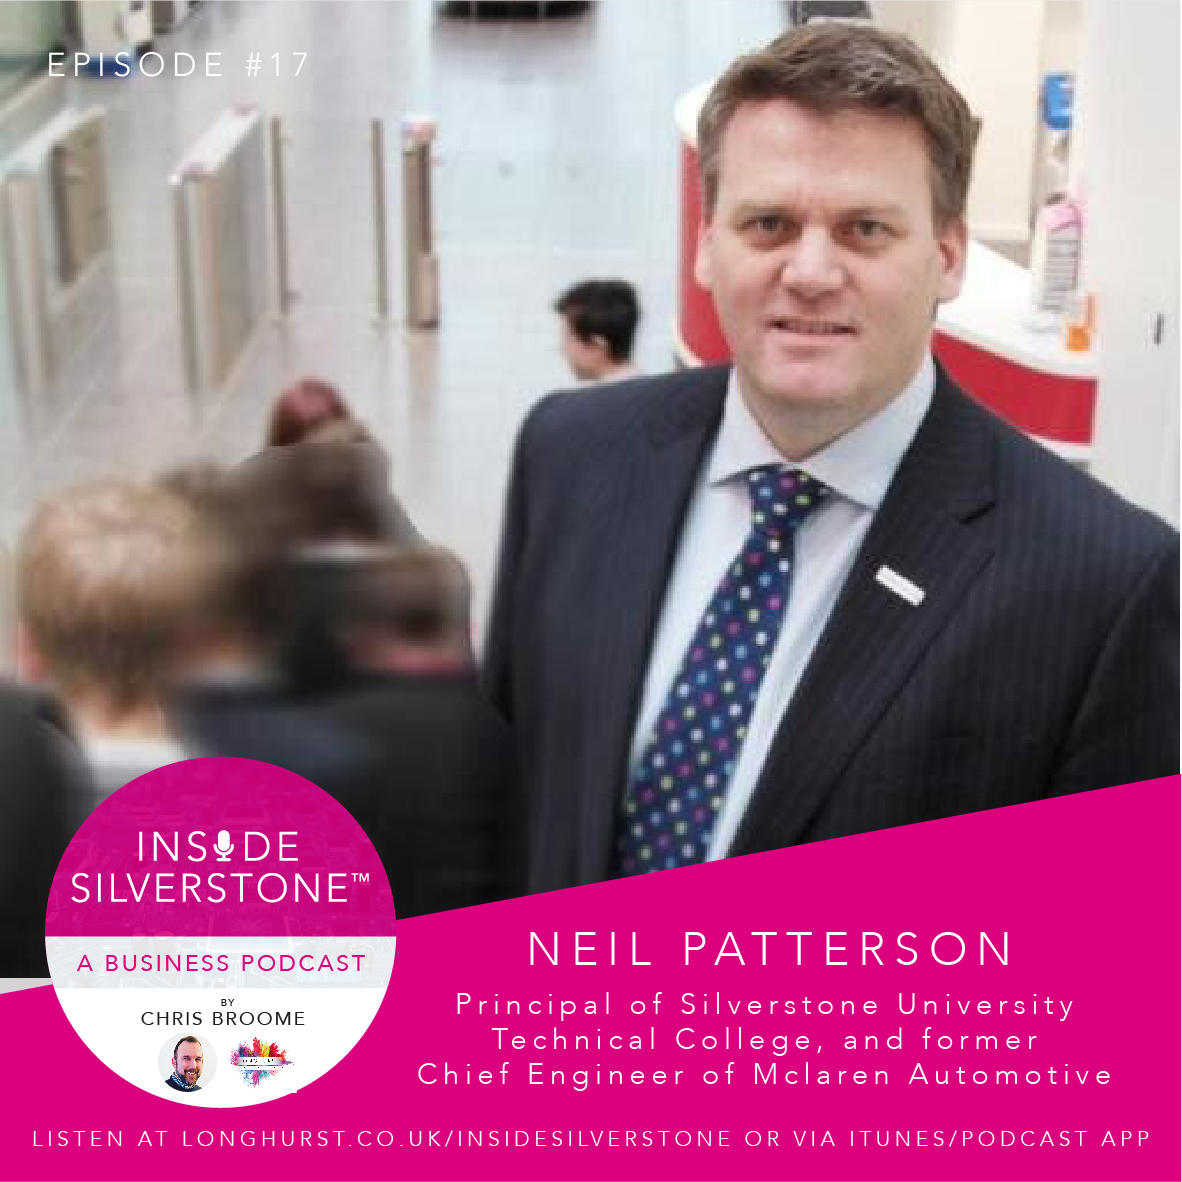 Neil Patterson, Principal of Silverstone University Technical College, and former Chief Engineer of Mclaren Automotive